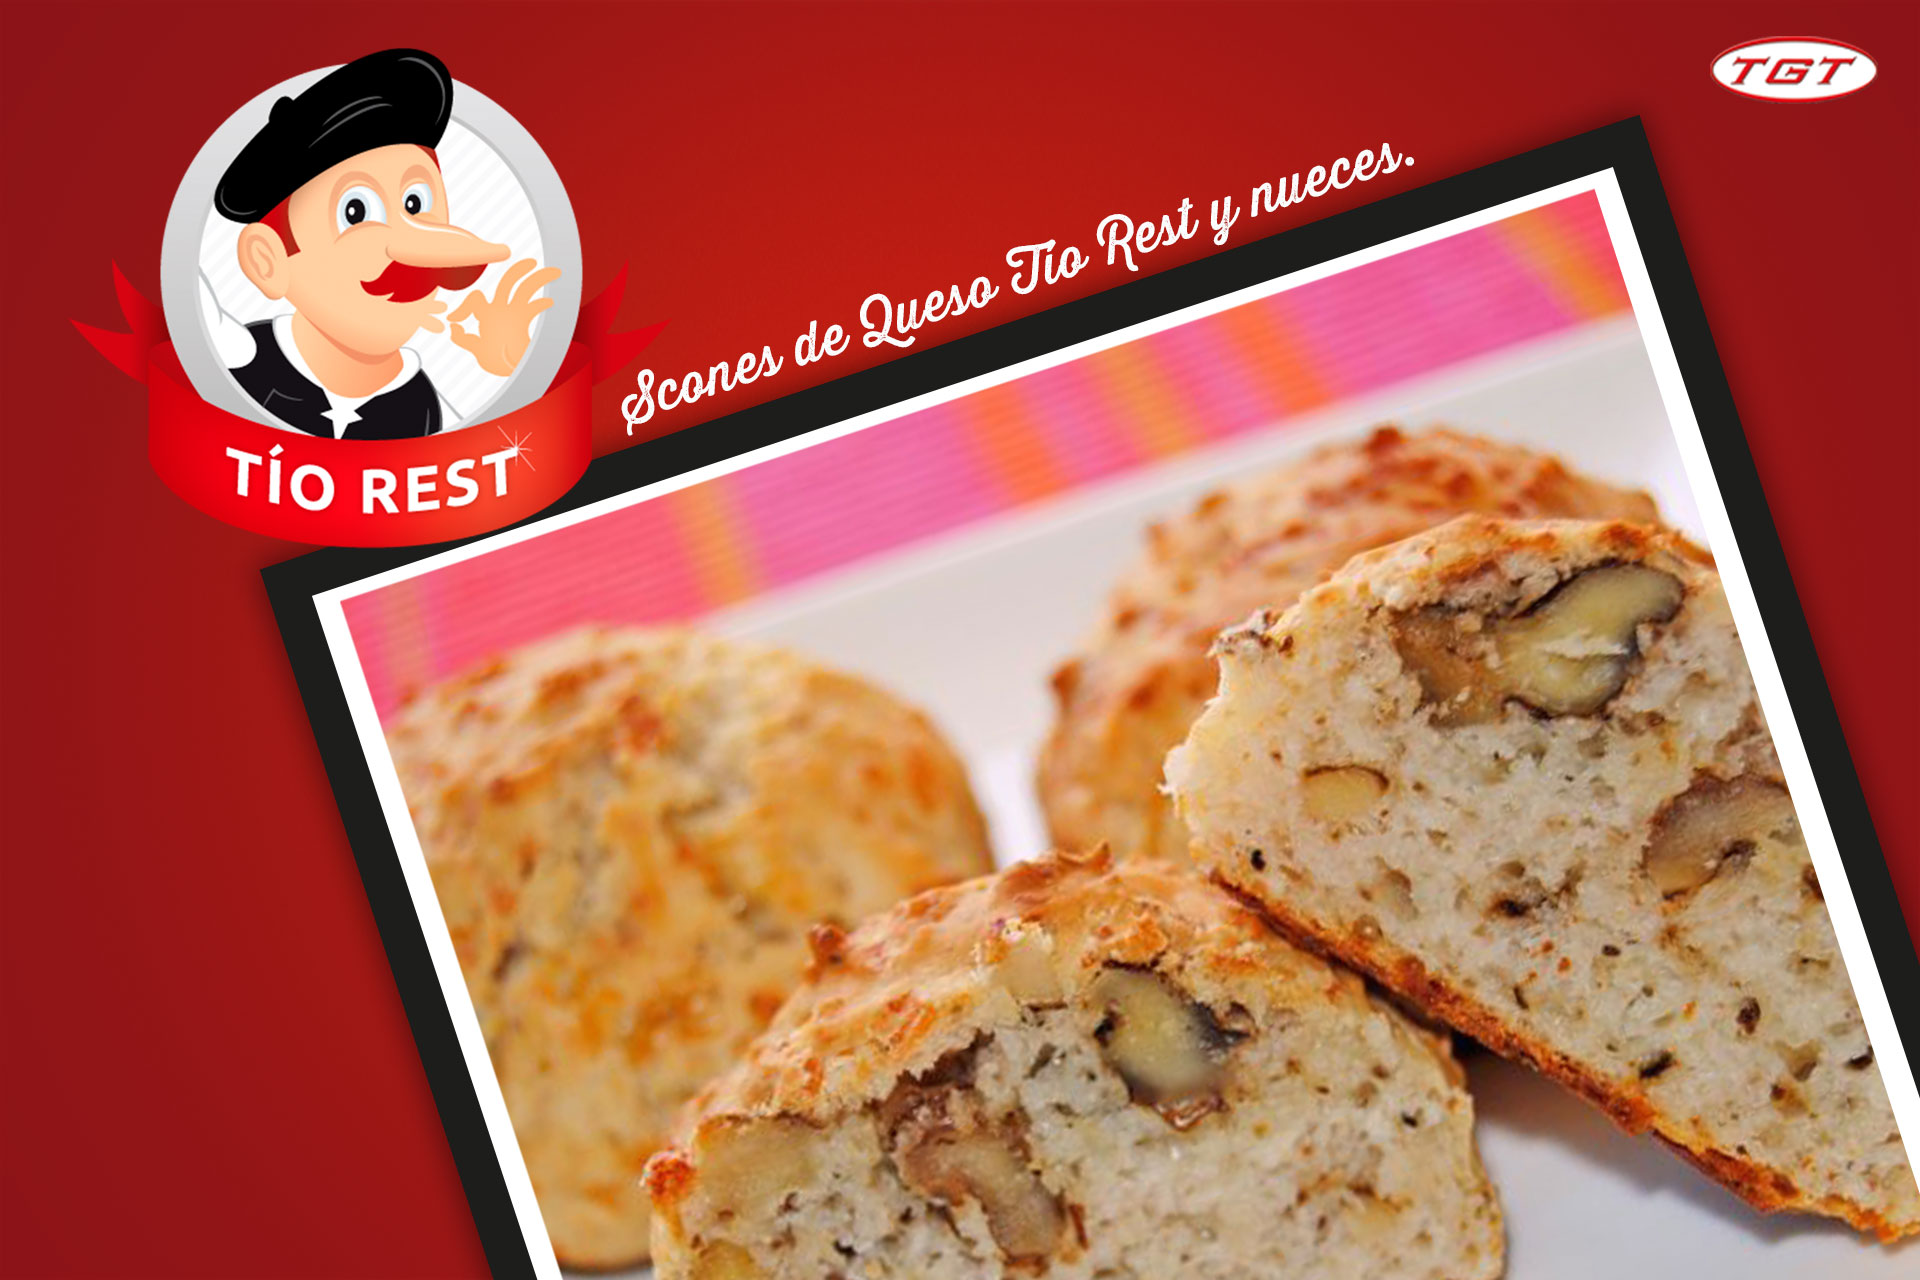 scones-de-queso-tio-rest-y-nueces